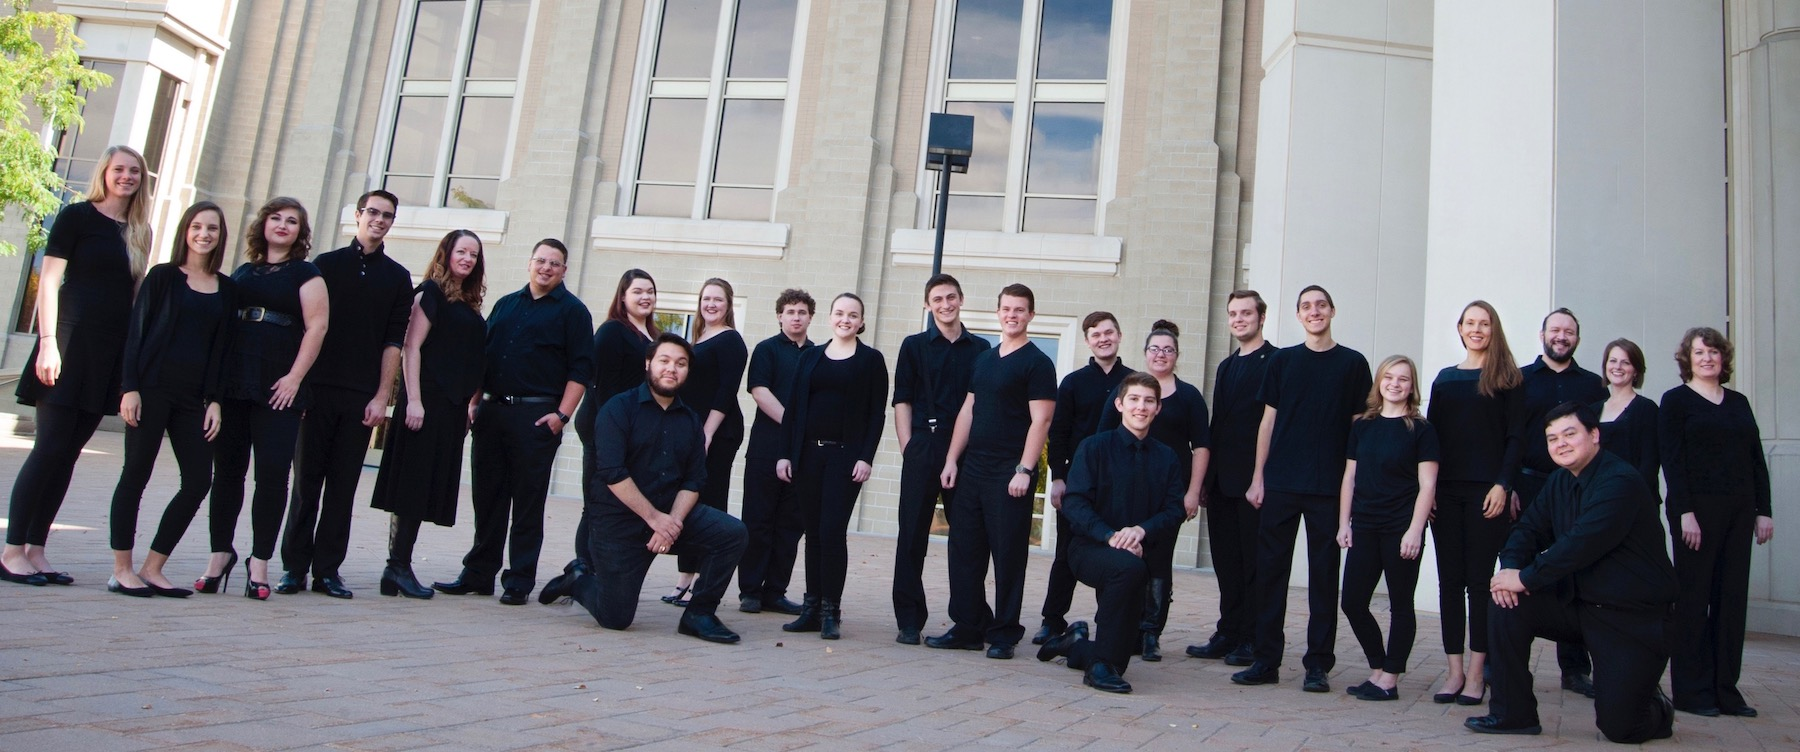 ISU Choirs Spring Concert scheduled for April 20